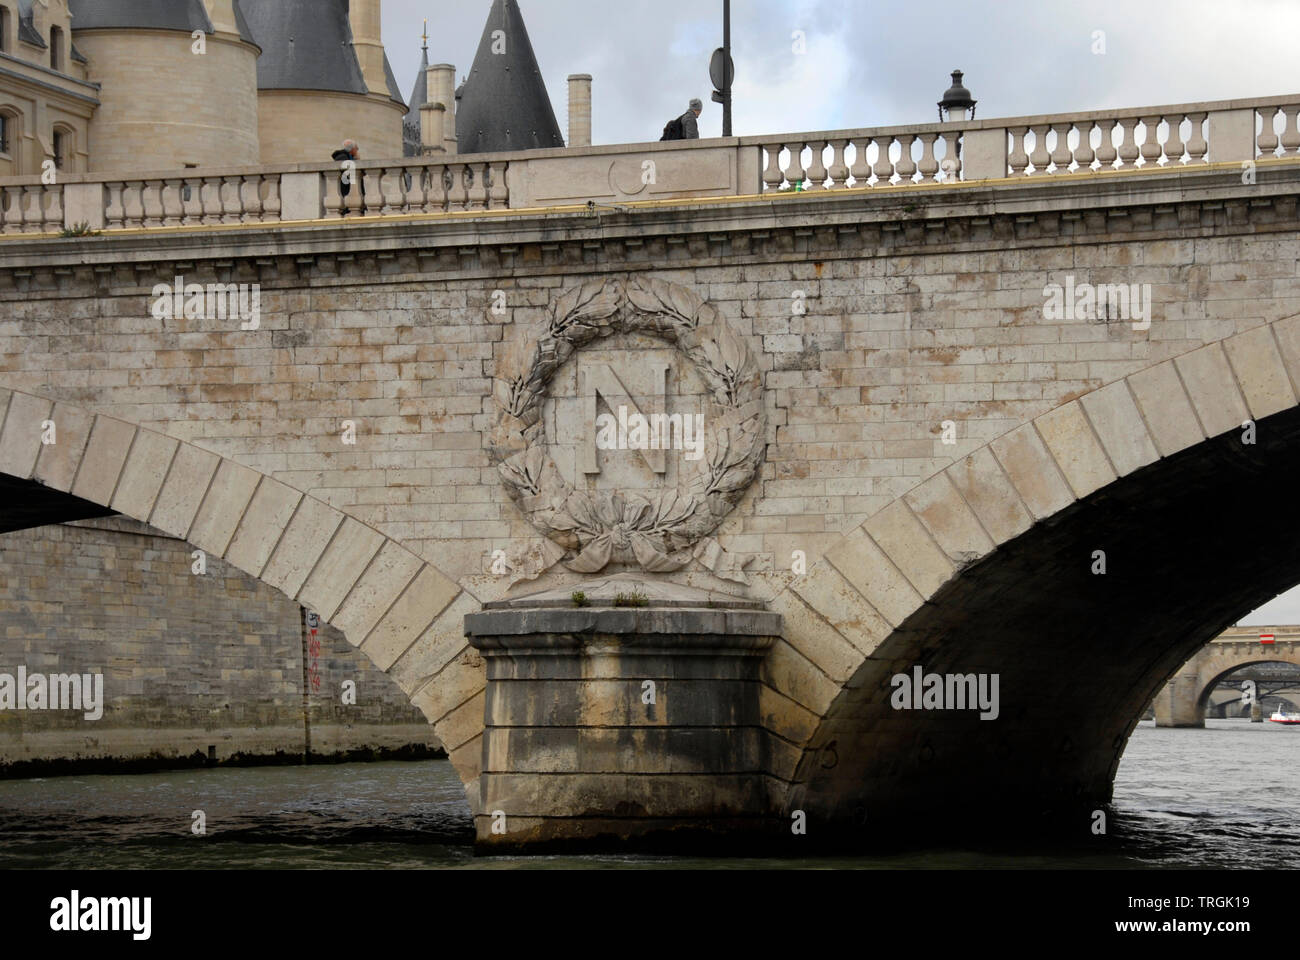 Pont au Change, Paris, France, with a large letter N in a circular wreath as part of the stonework - Stock Image